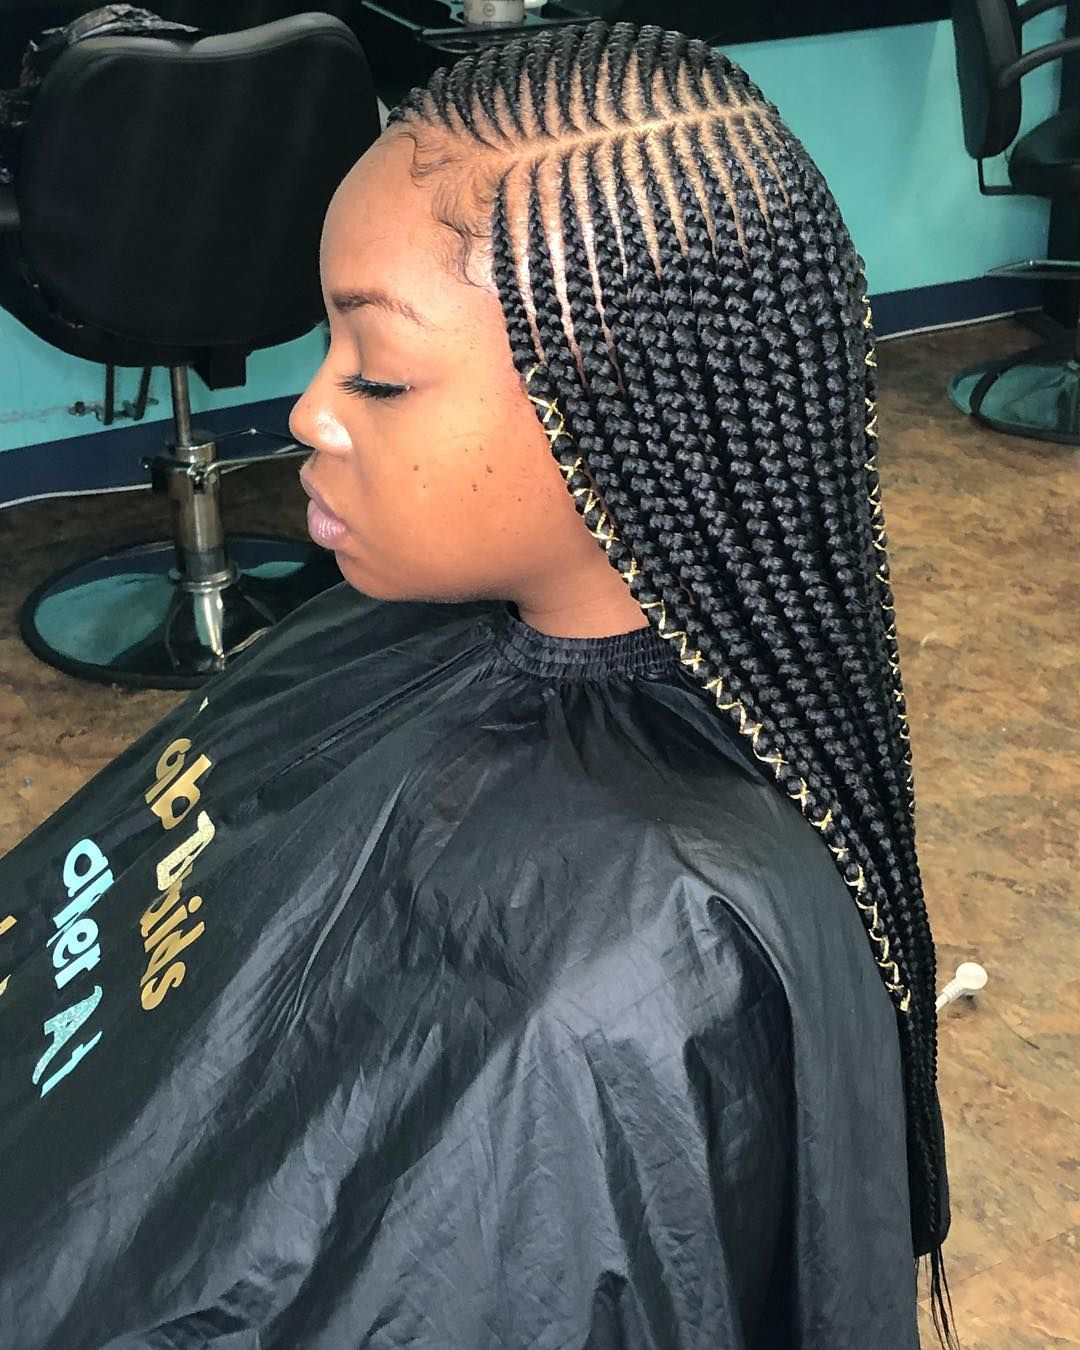 image may contain: 1 person | braid styles in 2019 | braided